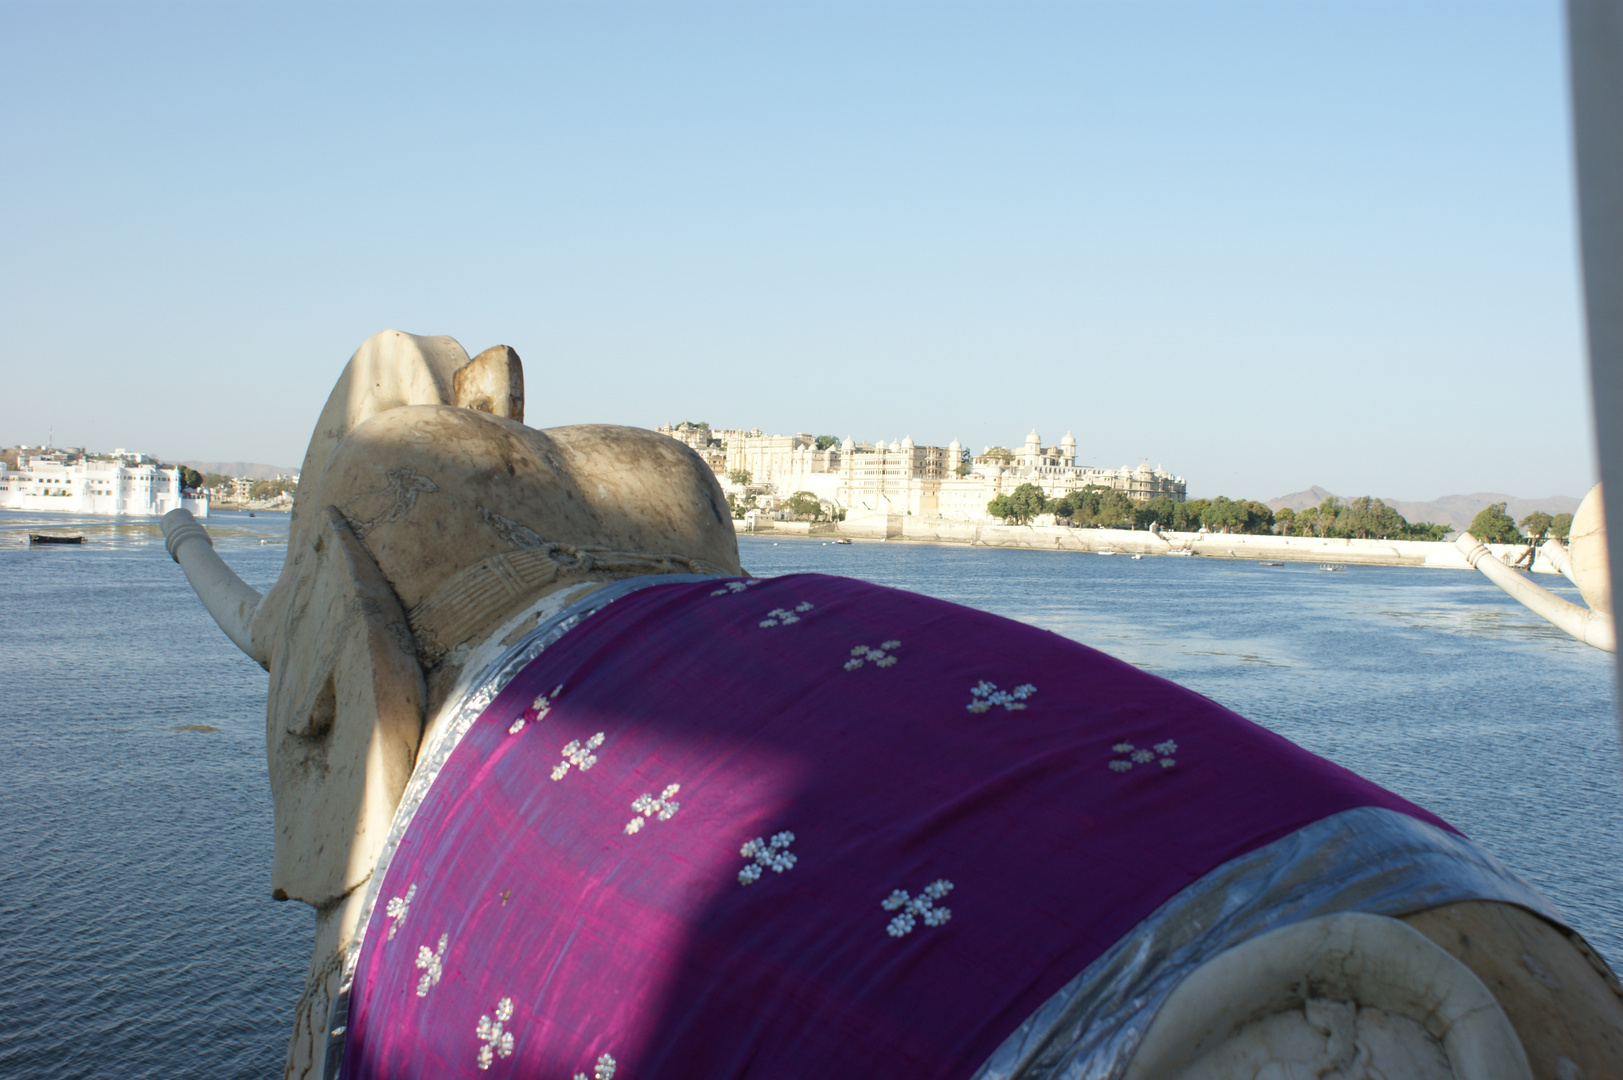 View from the Stone Elephants of Jag Mandir over Lake Pichola to the City Palace Complex, Udaipur